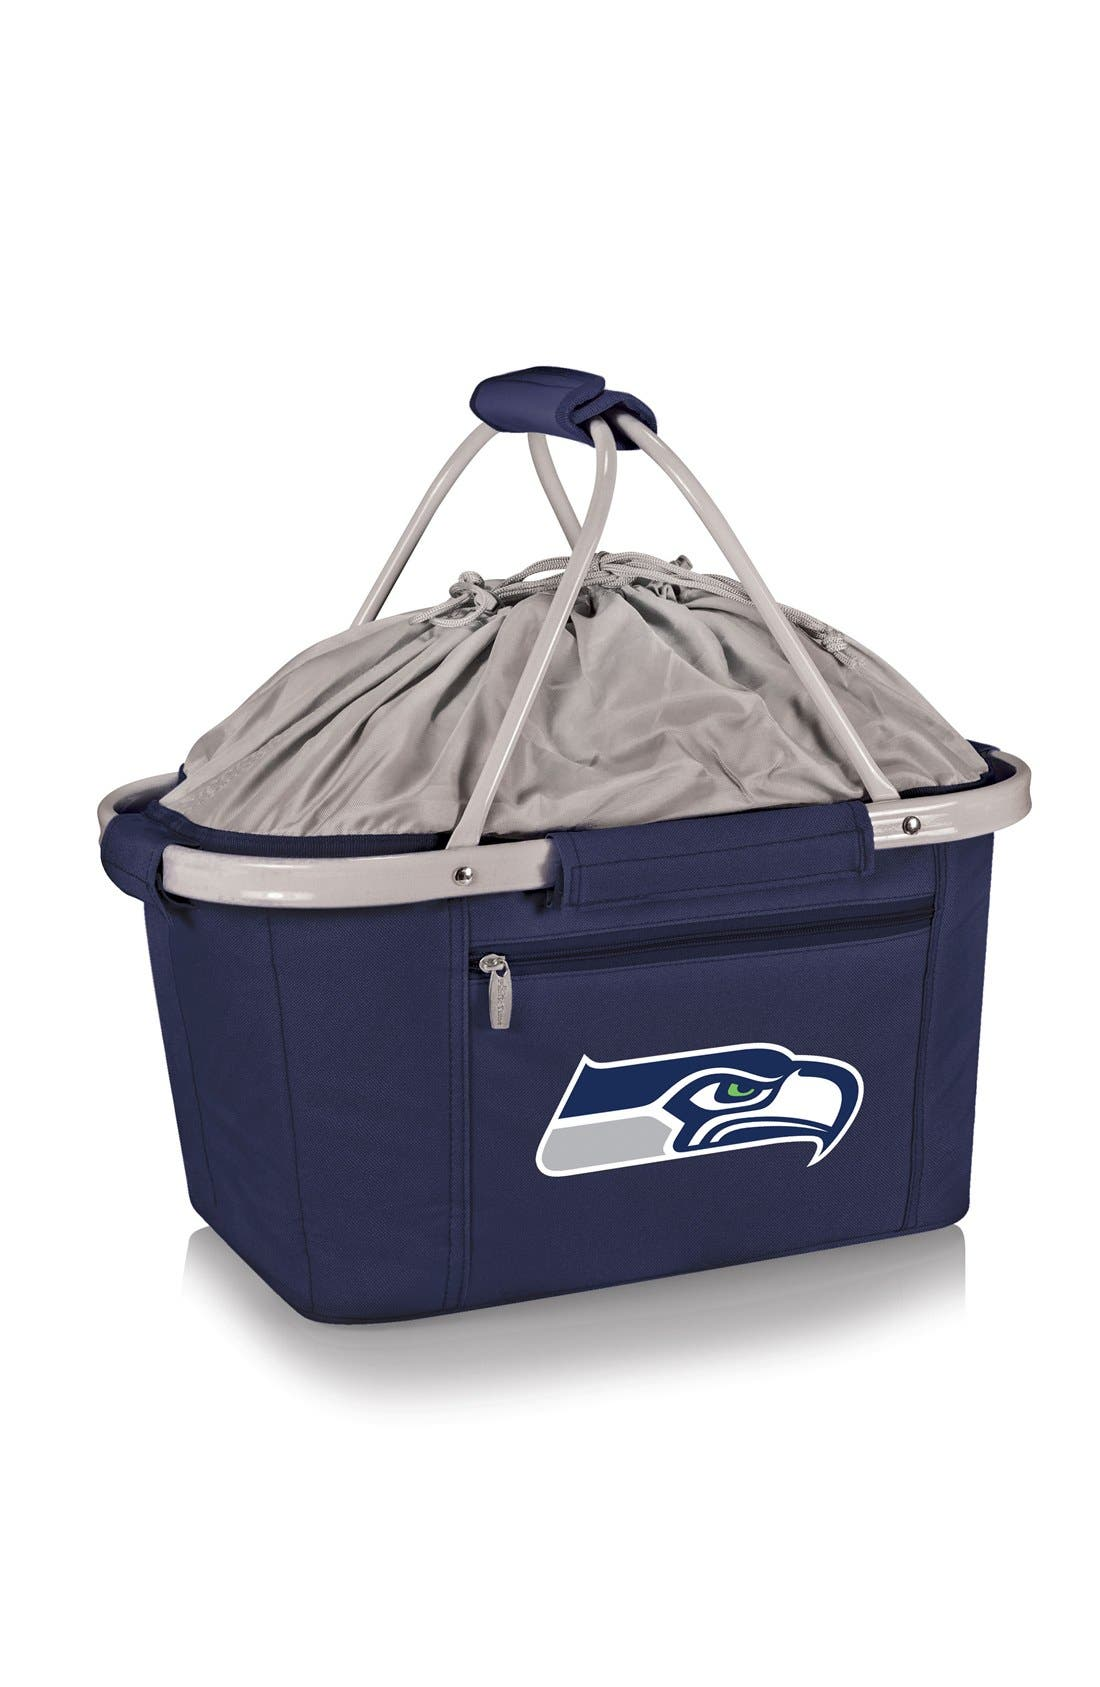 PICNIC TIME,                             Metro NFL Collapsible Insulated Basket,                             Main thumbnail 1, color,                             409